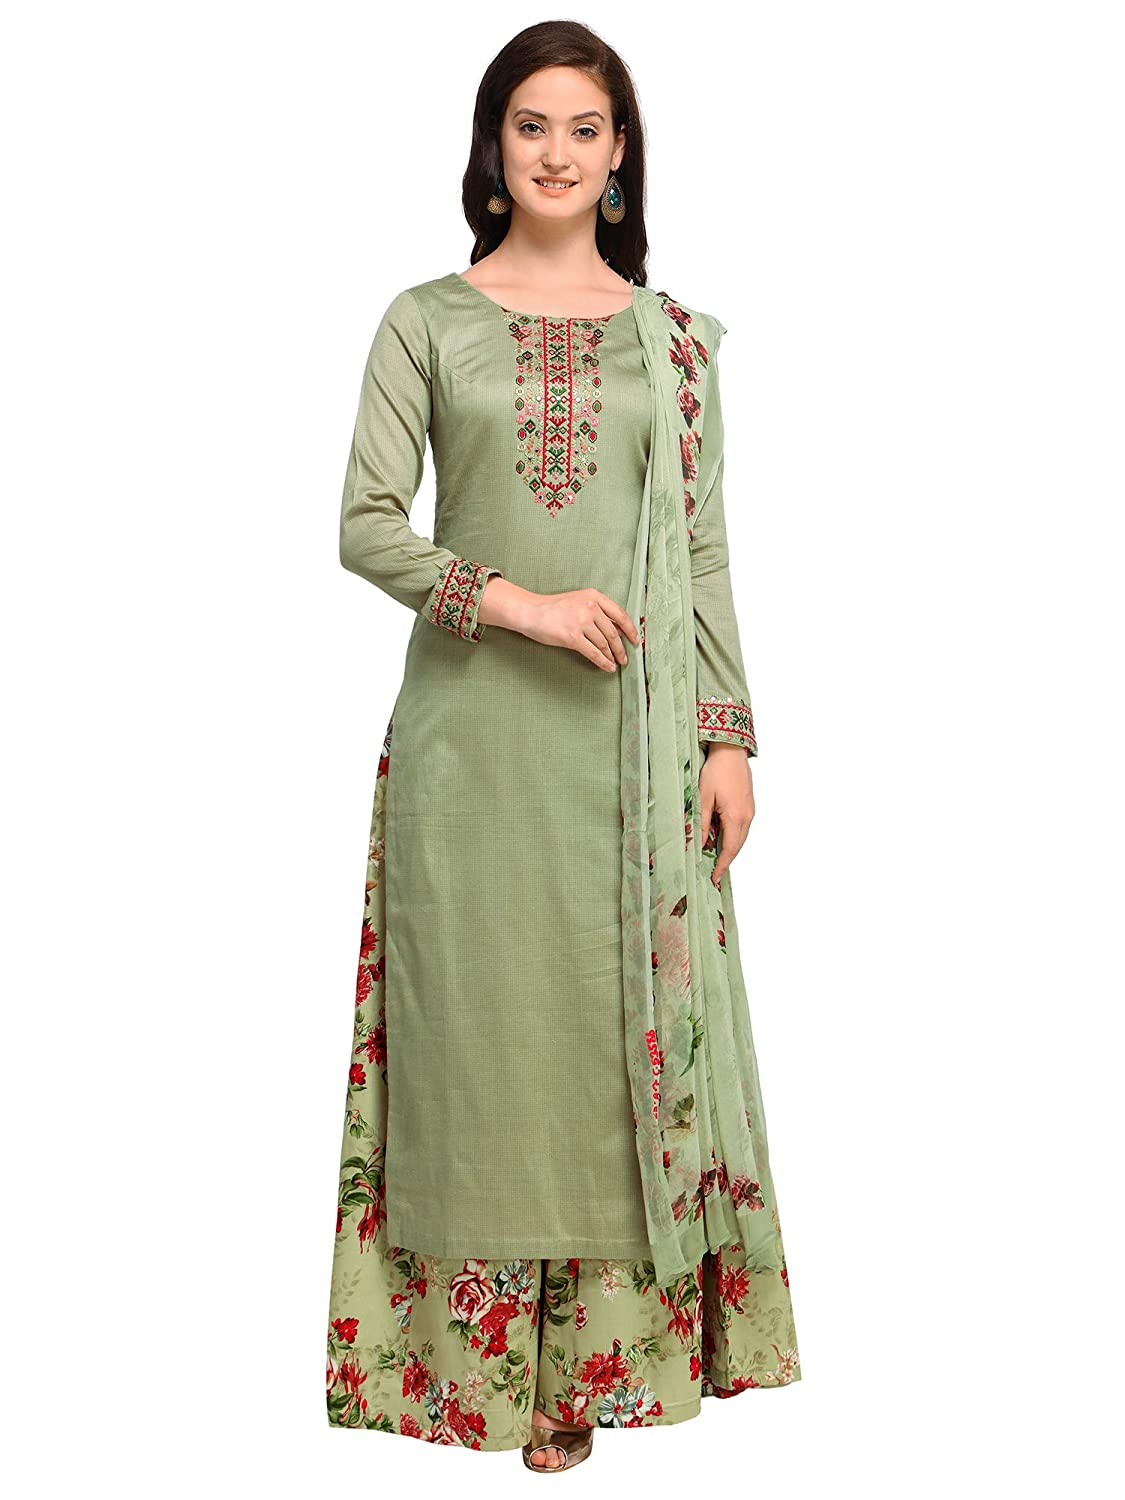 355219a815 AKHILAM Women's Cotton Blend Embroidered Unstitched Salwar Suits Salwar  Suit Material With Palazzo Set (Olive Green_Free Size): Amazon.in: Clothing  & ...